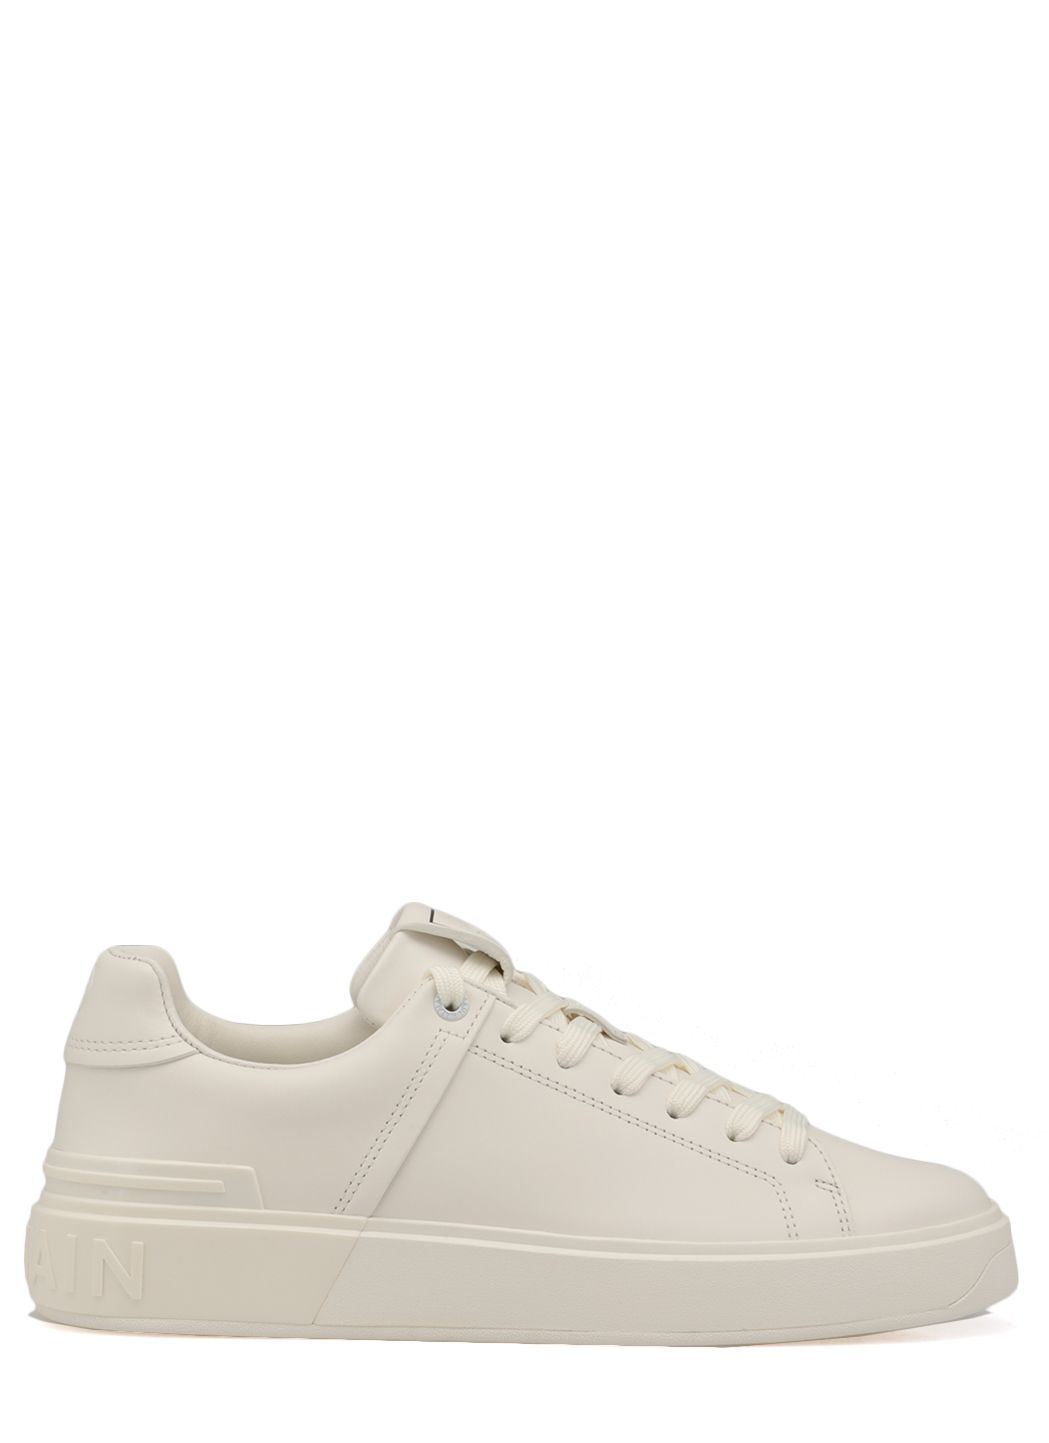 B-court leather sneaker